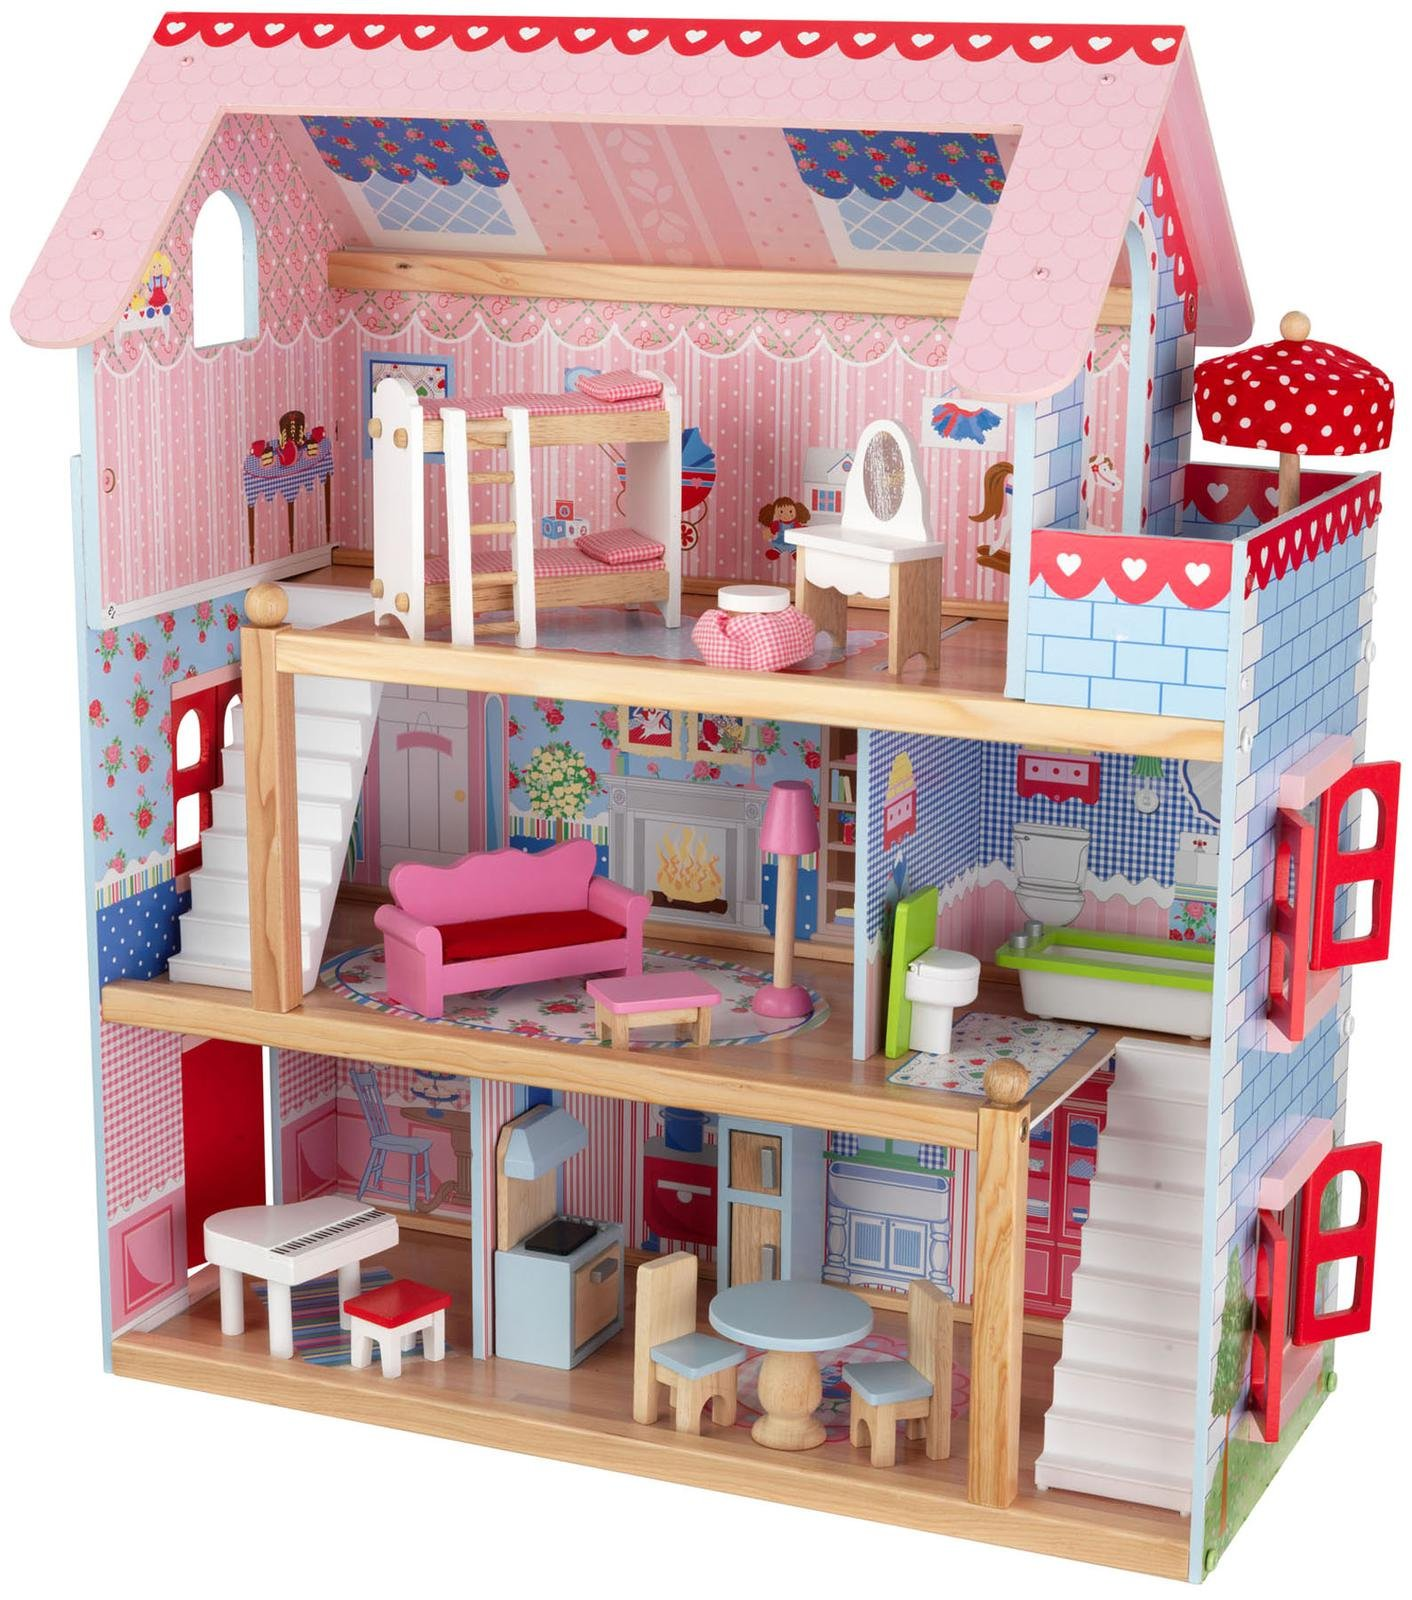 KidKraft Chelsea dollhouse review